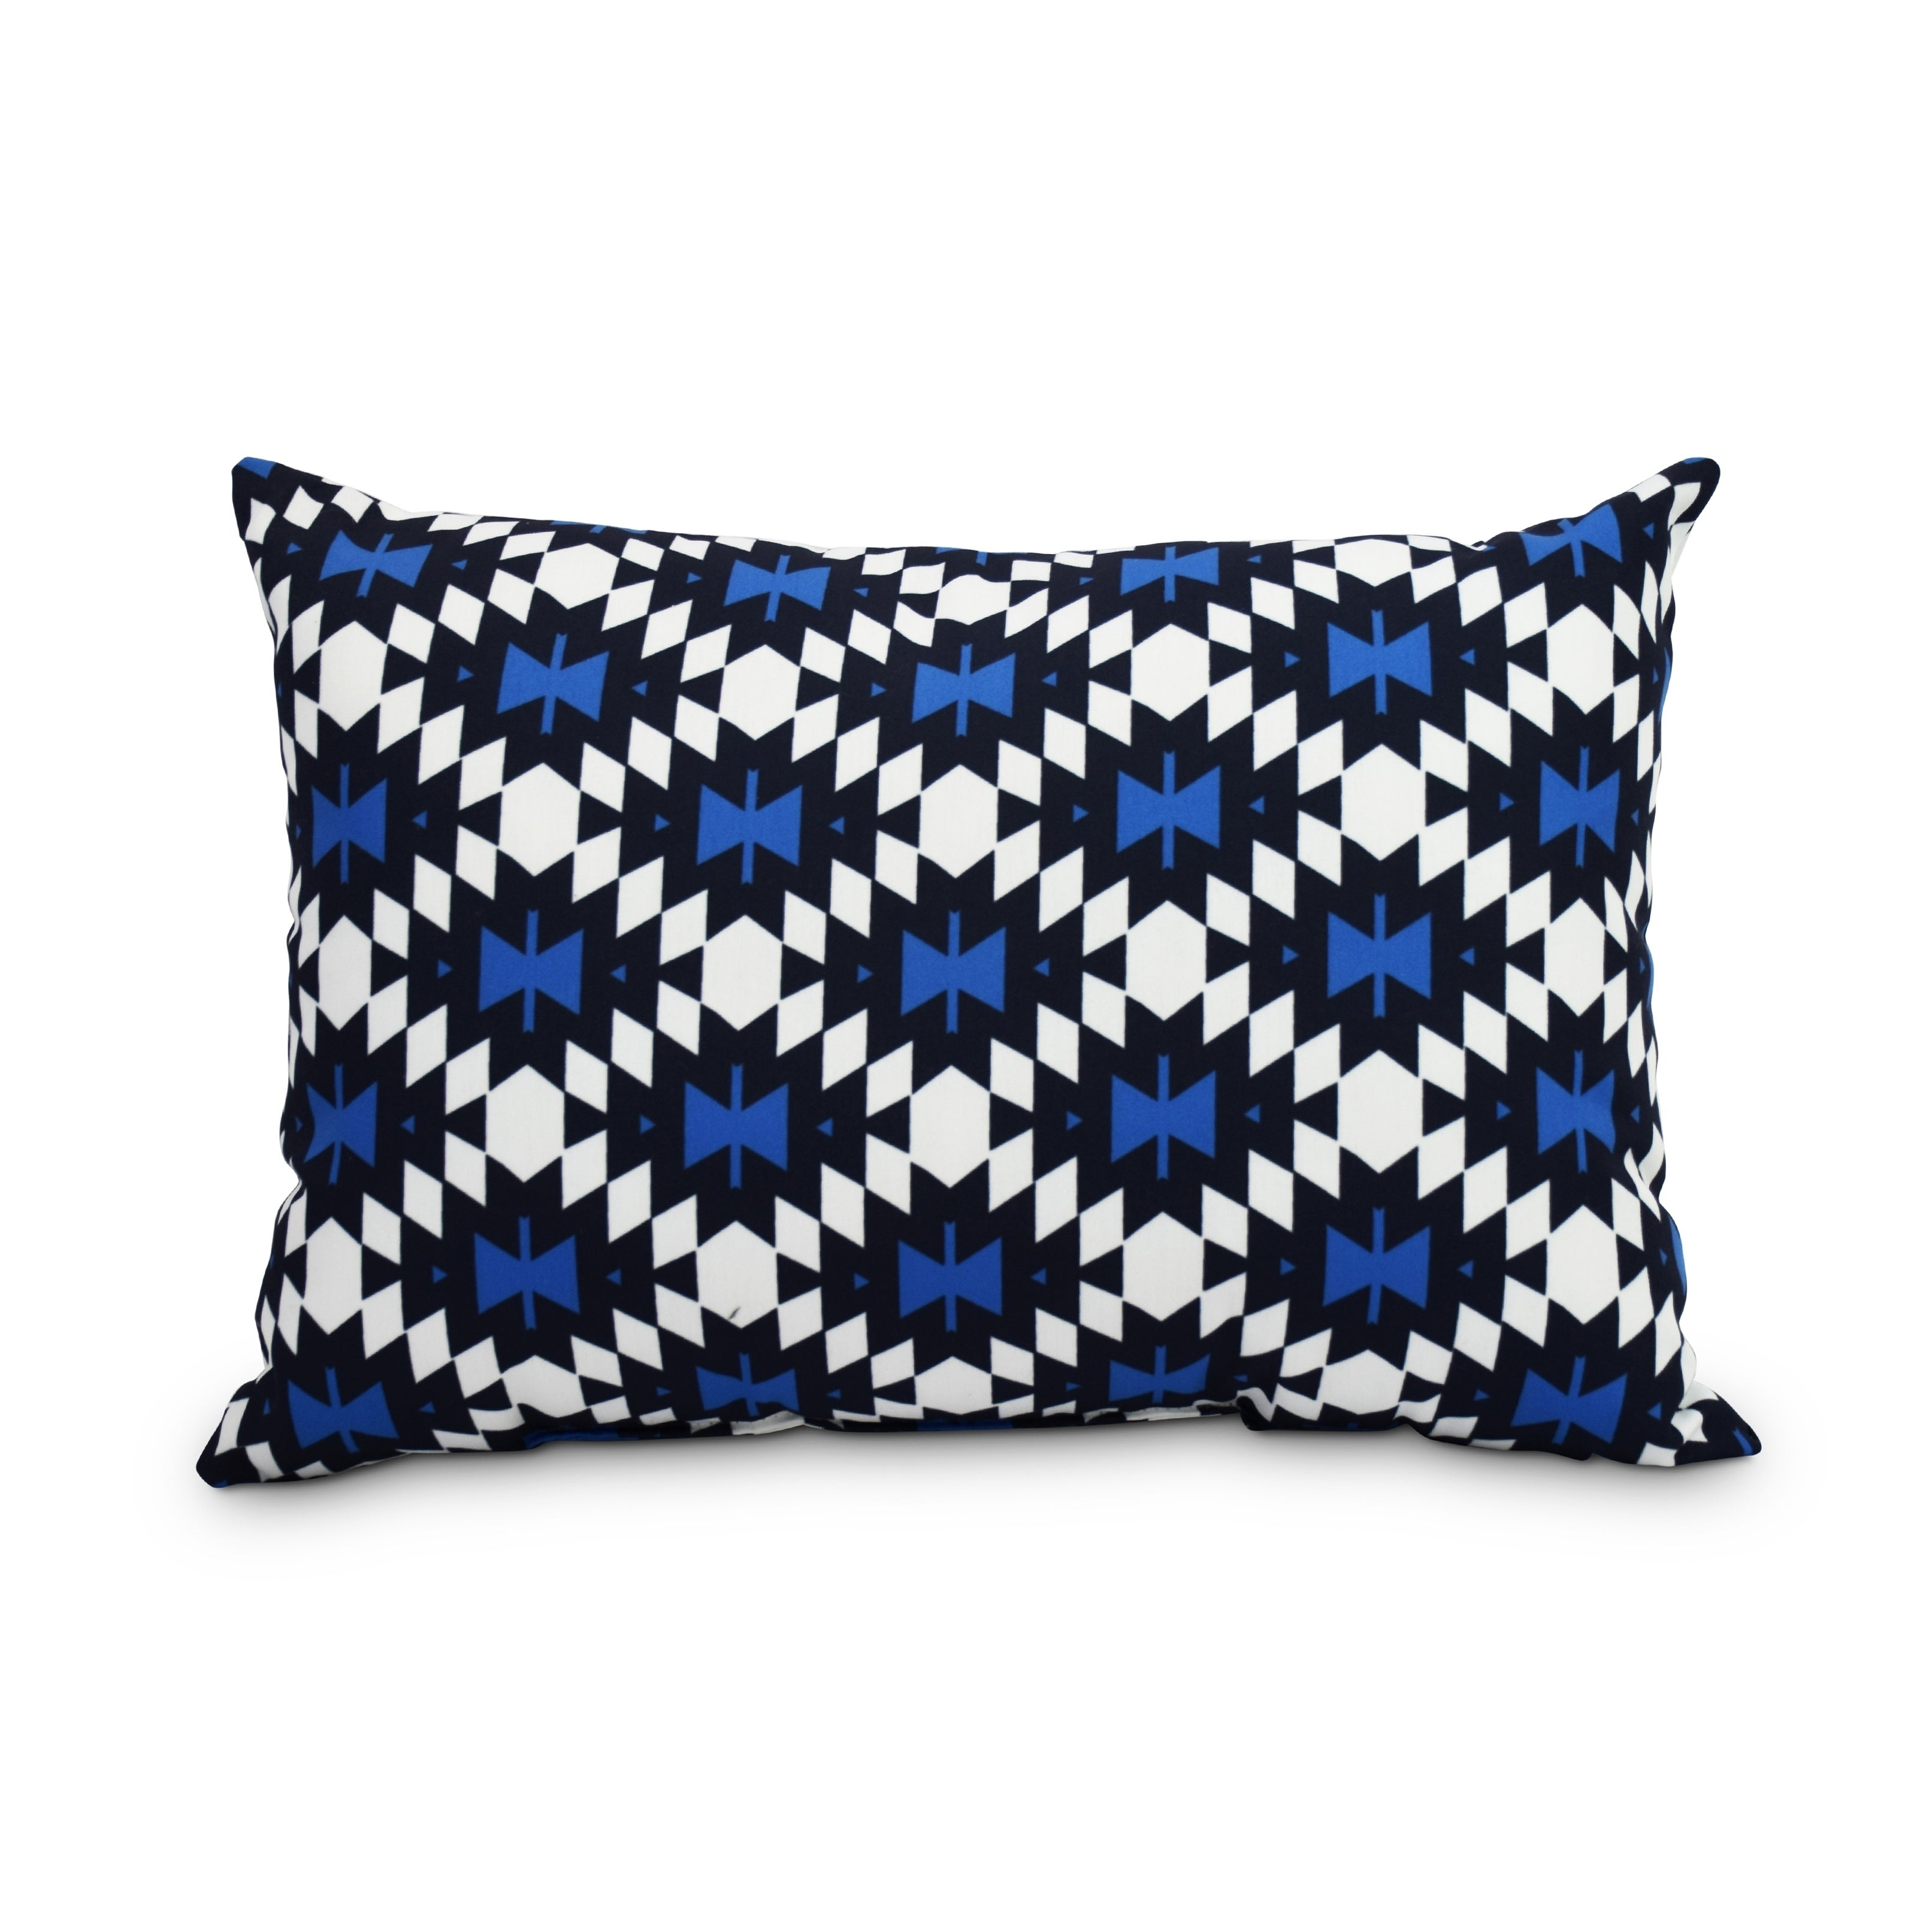 Shop Jodhpur Kilim 14 X 20 Inch Navy Blue Decorative Abstract Outdoor Throw Pillow Overstock 20675102